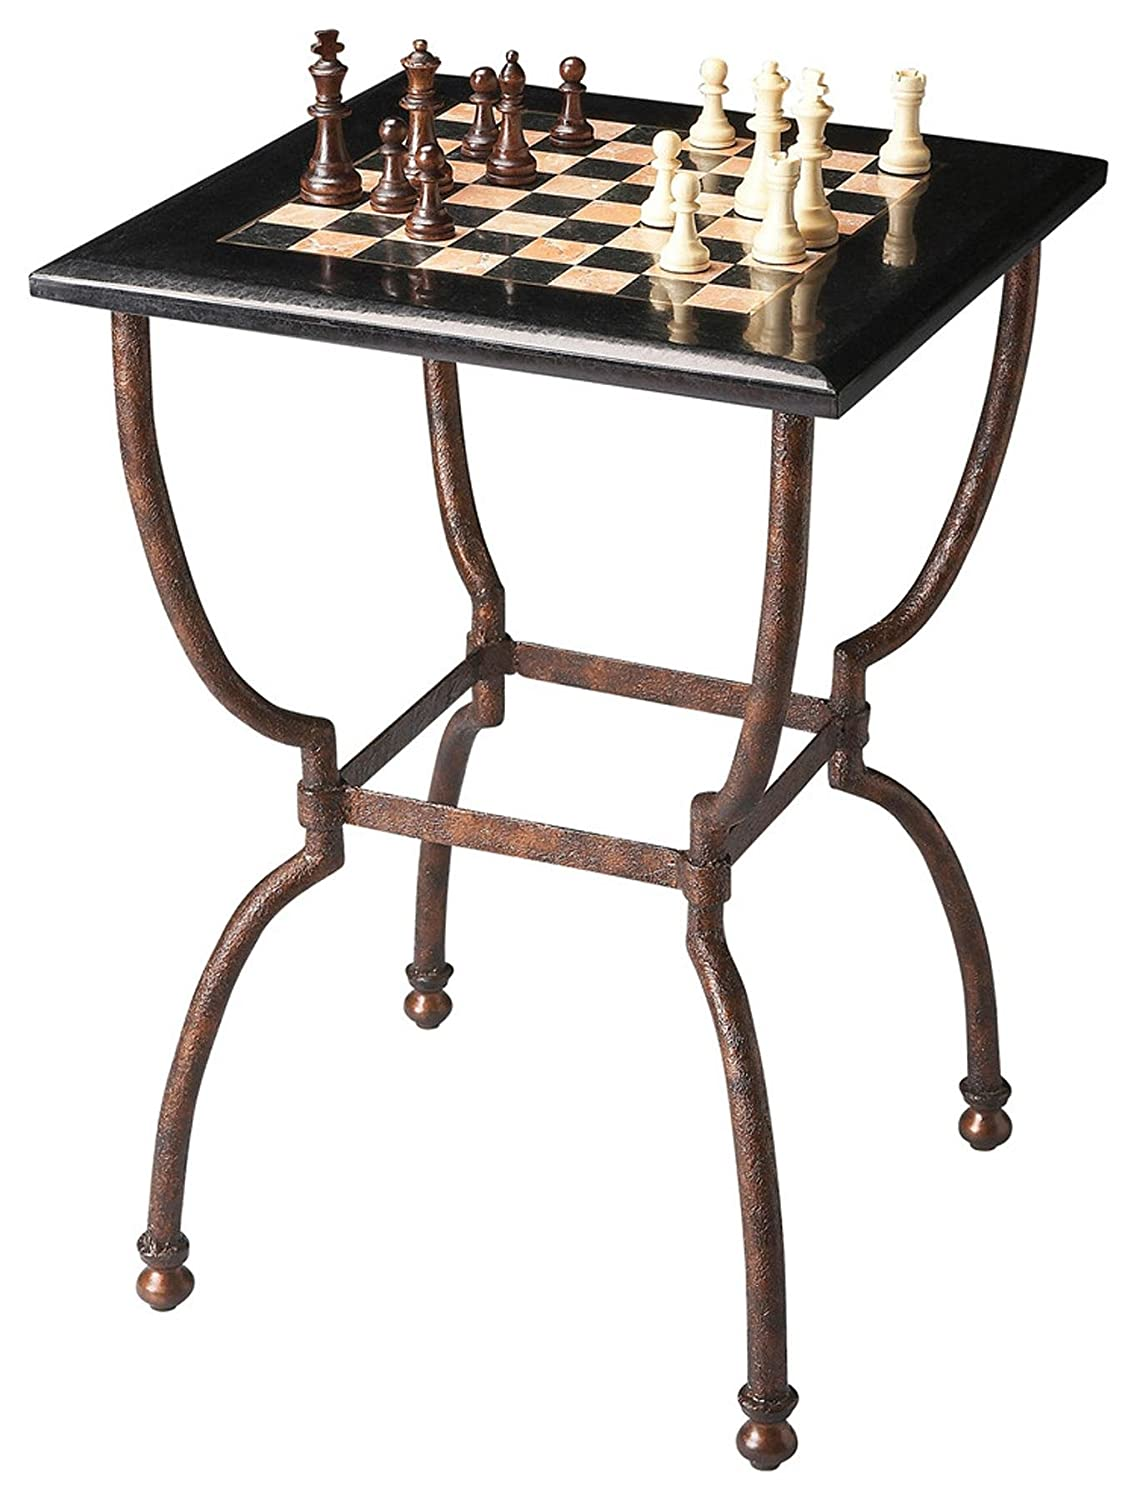 BUTLER 6061025 FRANKIE FOSSIL STONE GAME TABLE Butler specality company